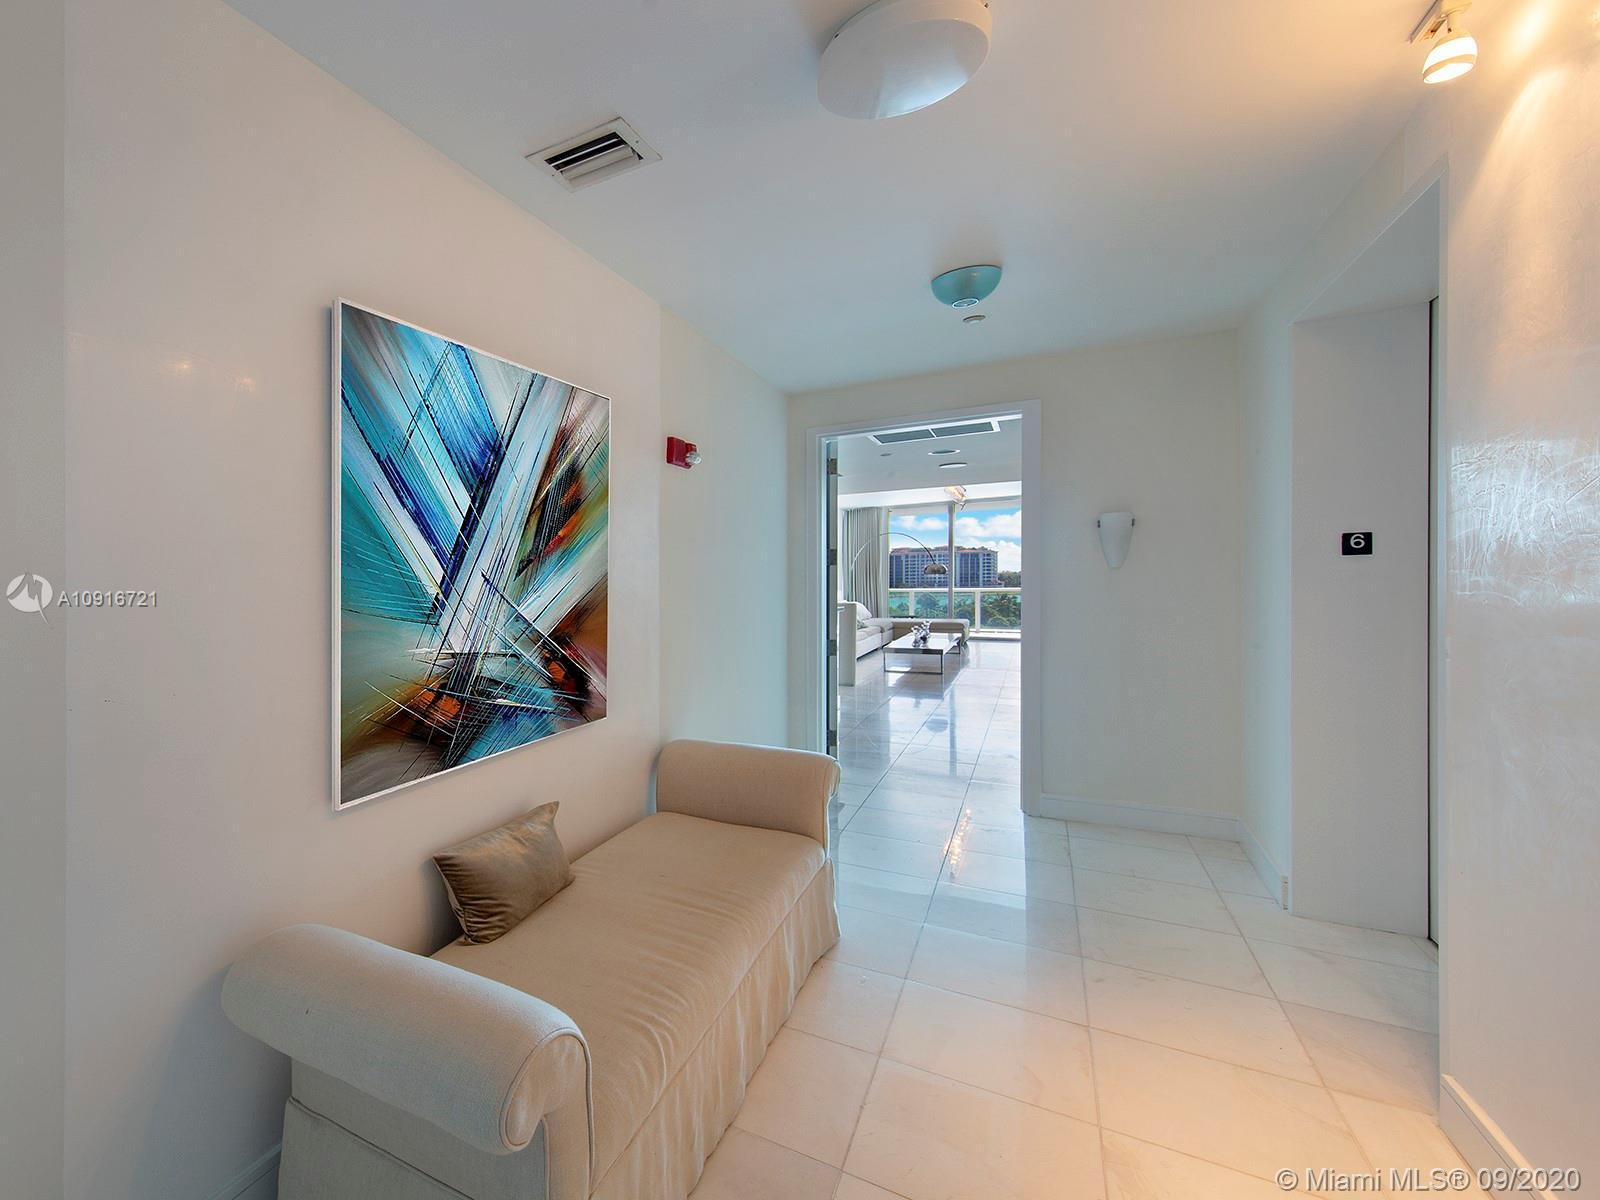 Photo of CONTINUUM SOUTH TOWER Apt 602 that clicks through to the property detail page